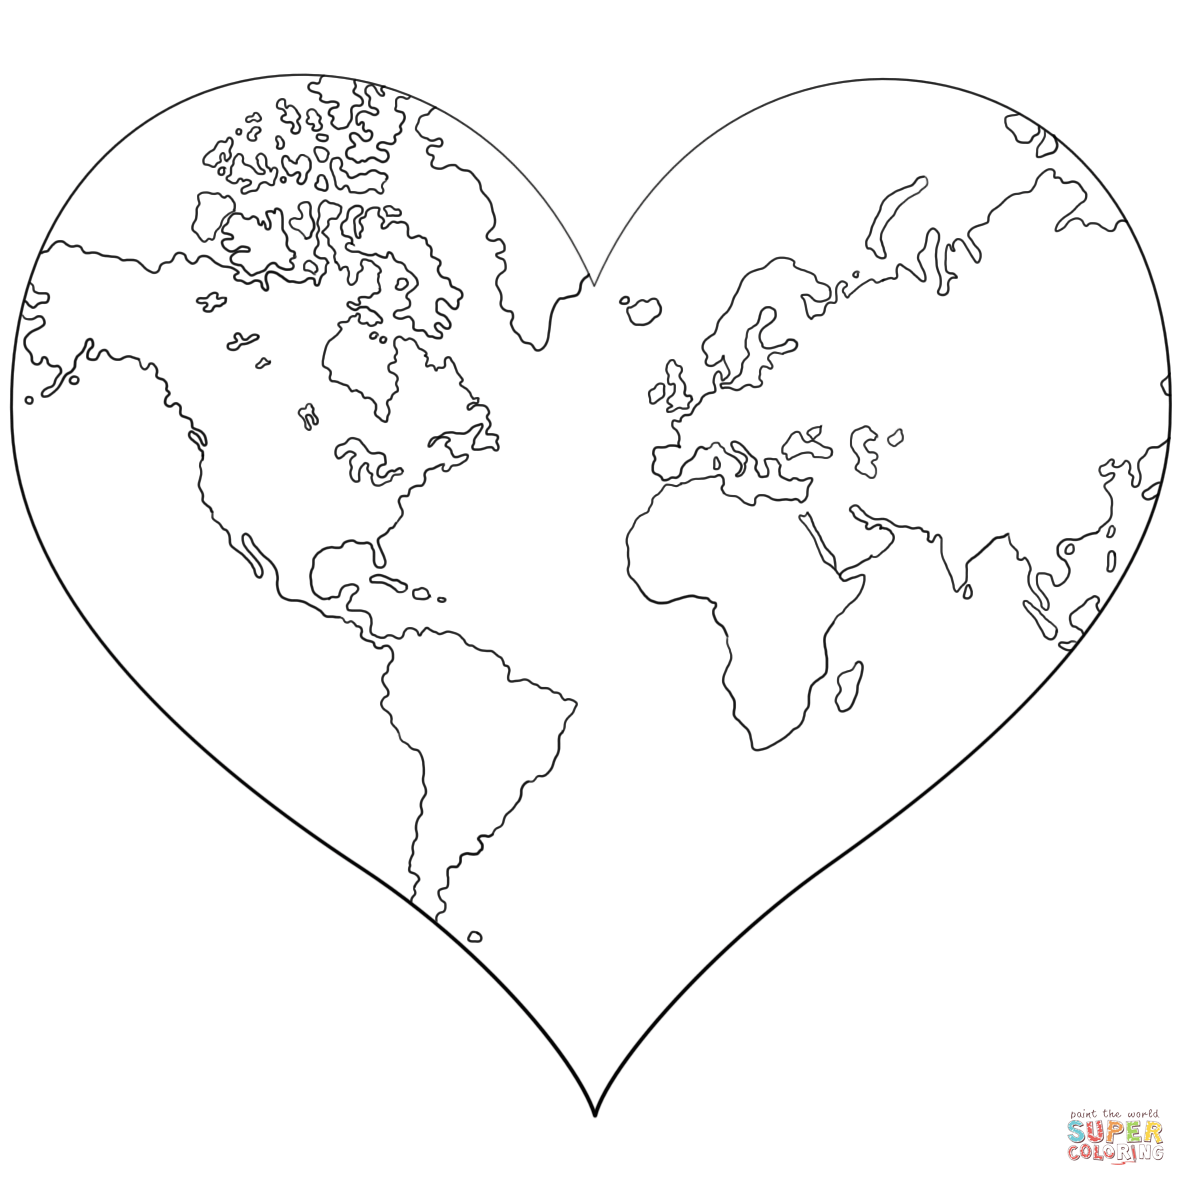 Heart Shaped Coloring Download Heart Shaped Coloring For